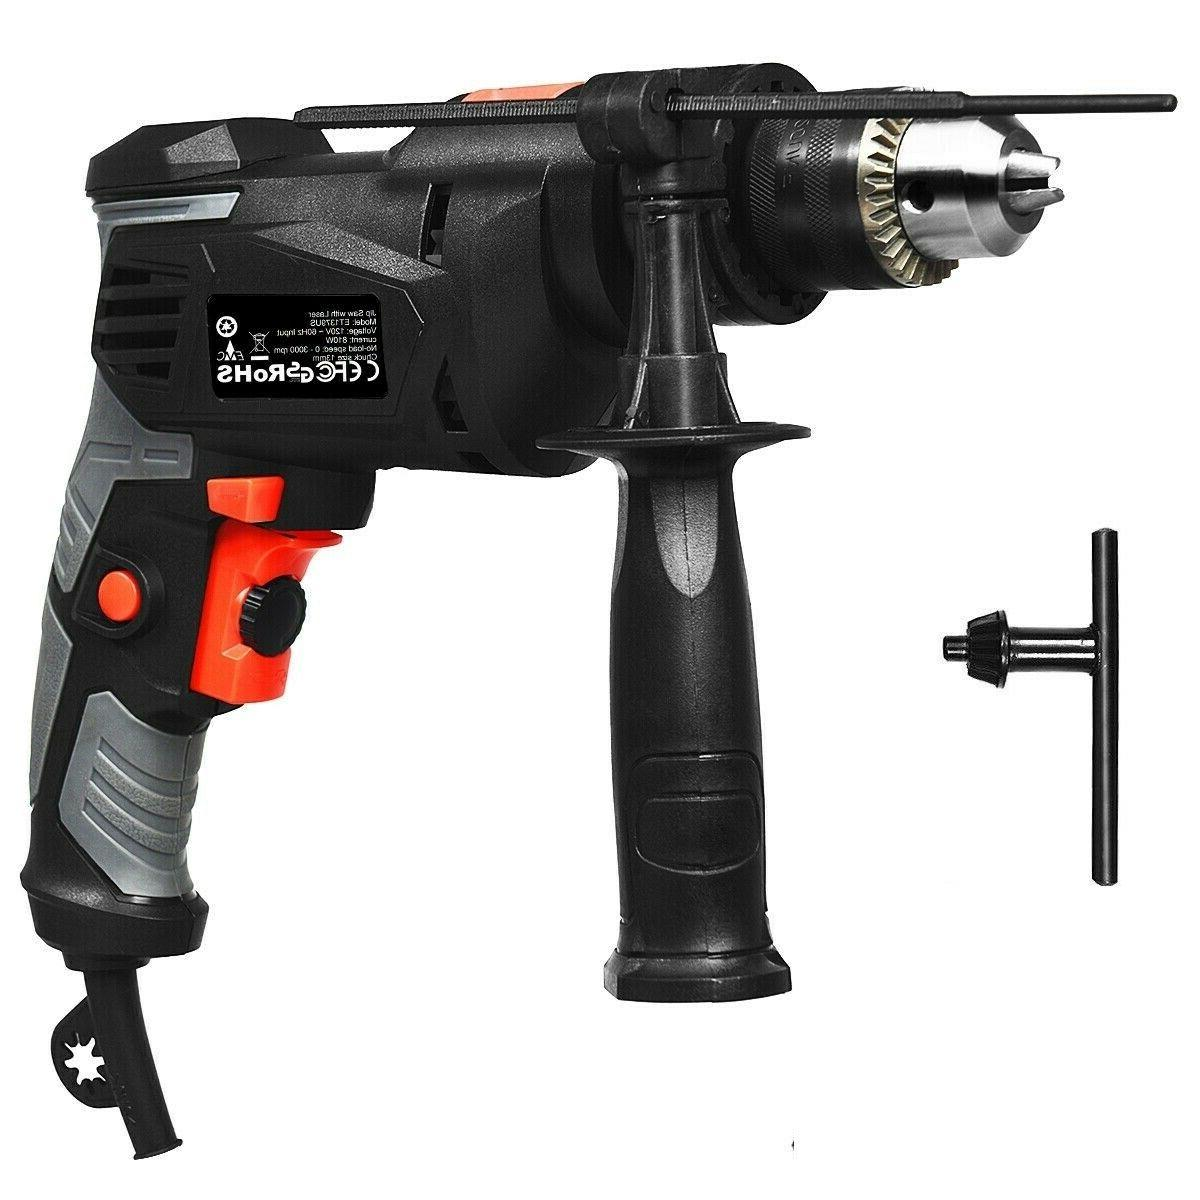 Hammer Drill Corded 1/2 Inch Electric Drill 3000 RPM Variabl